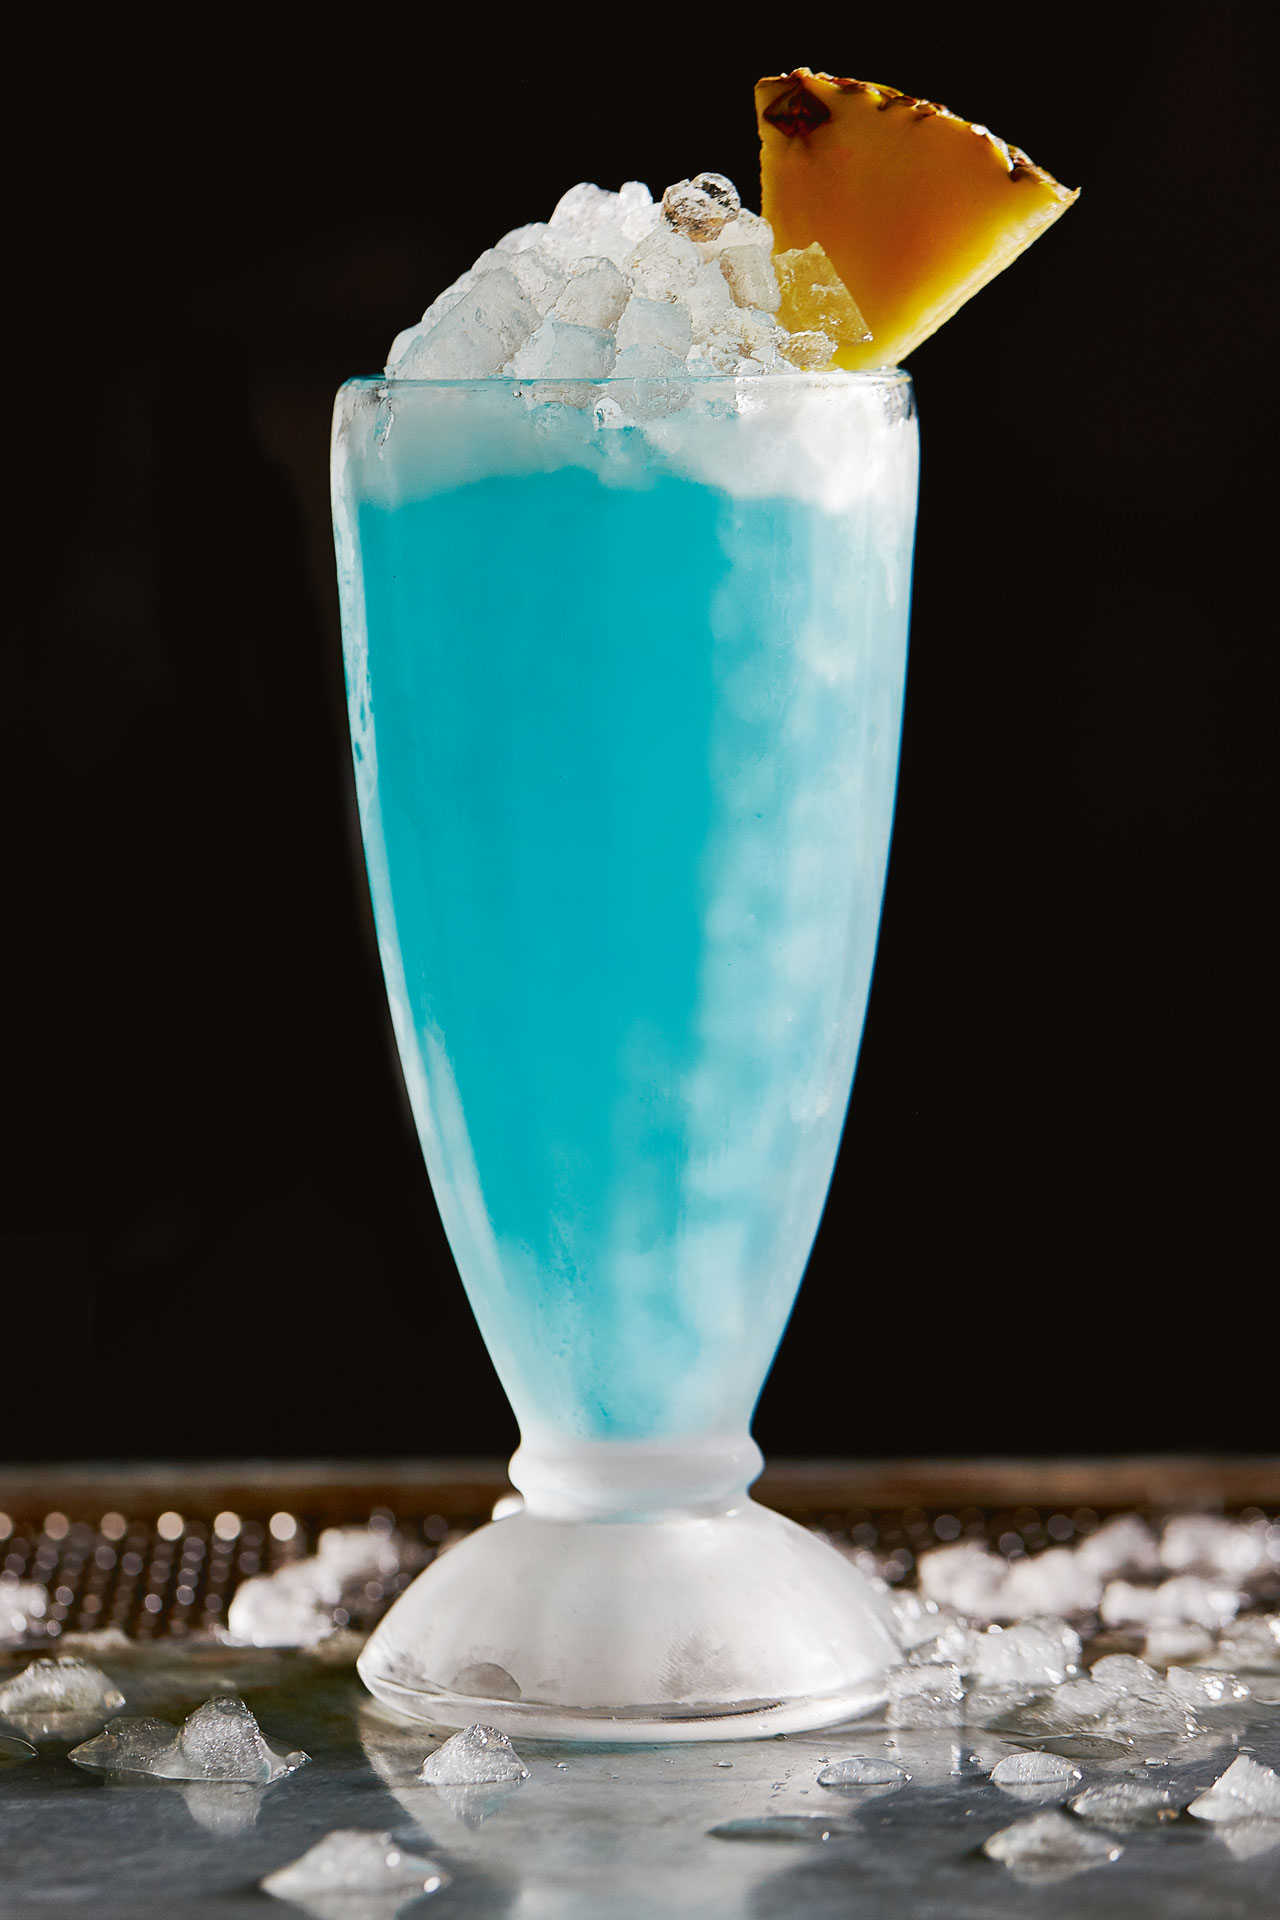 The Blue Hawaii cocktail is one of Jeffrey Morgenthaler's signature serves